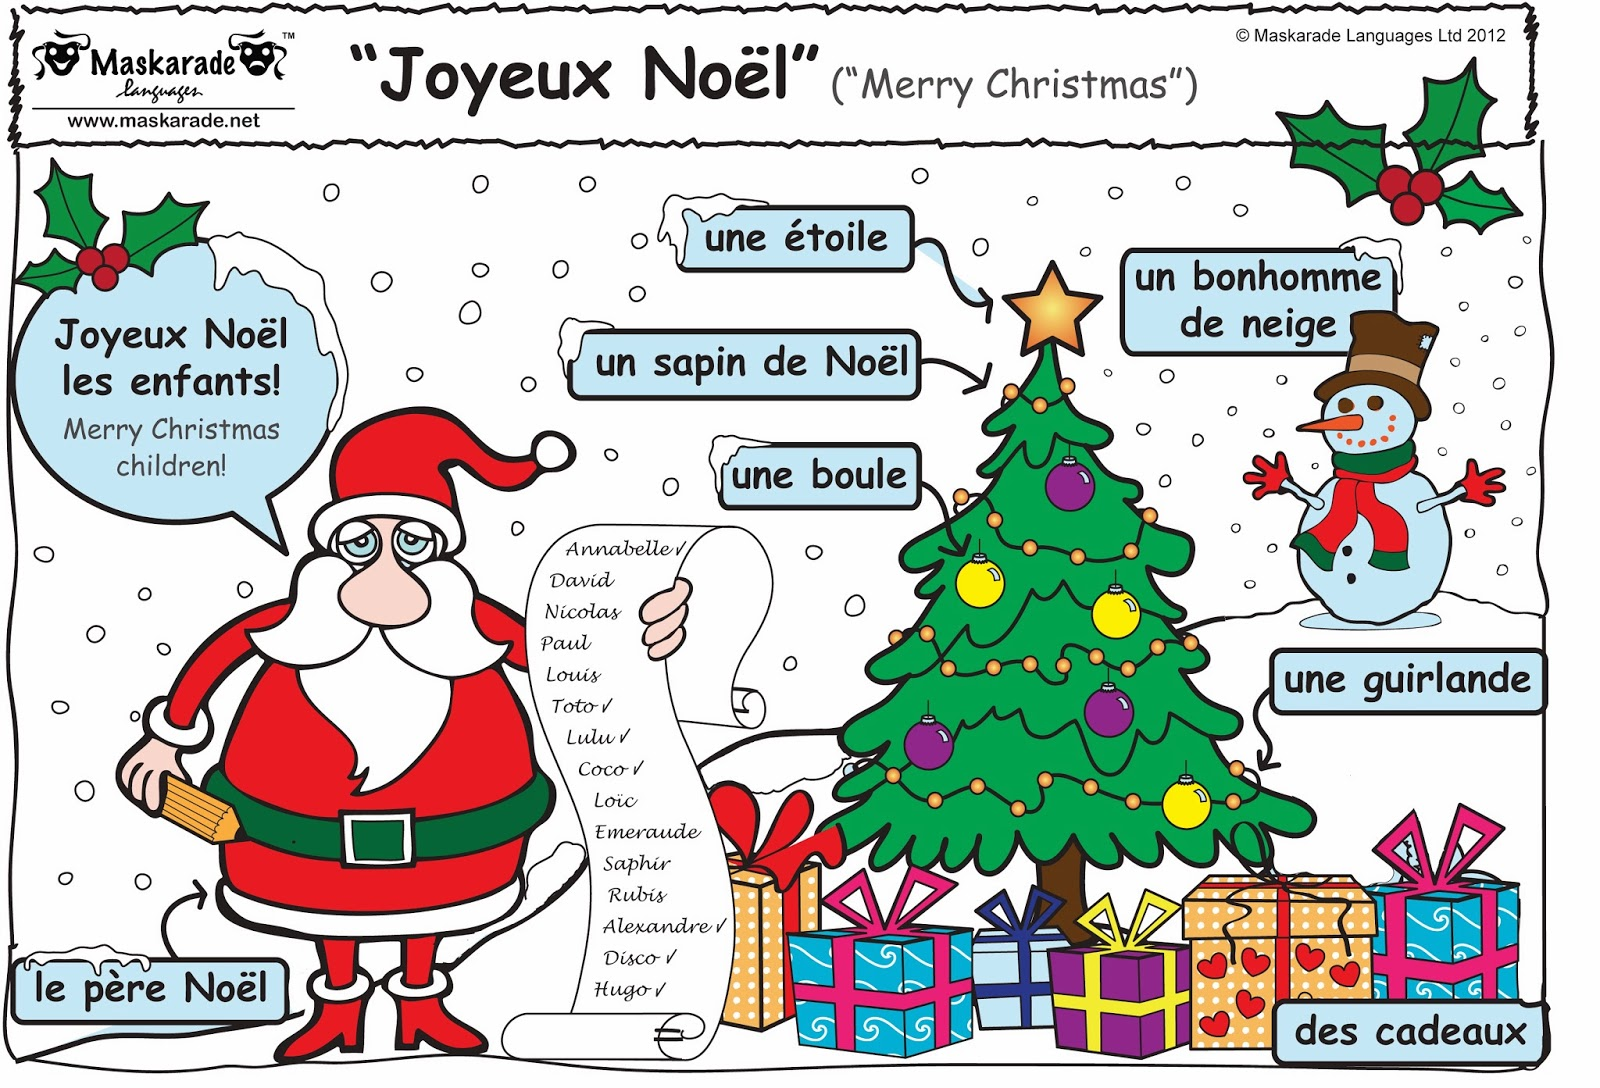 #069145 MASKARADE LANGUAGES: 2013 5357 decorations de noel carrefour 1600x1088 px @ aertt.com